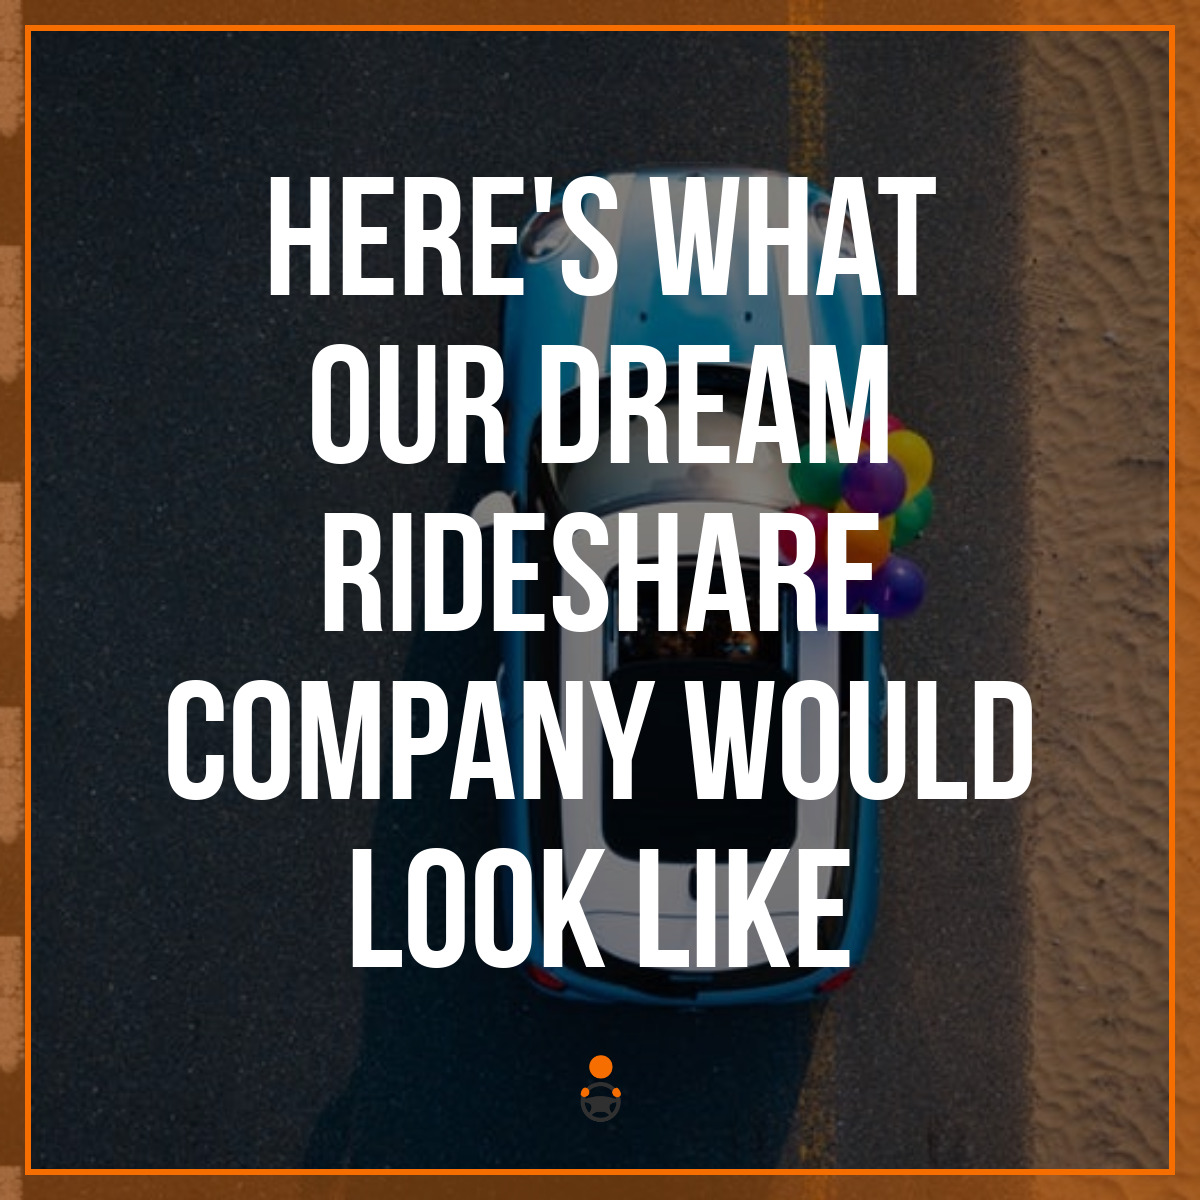 Here's What Our Dream Rideshare Company Would Look Like